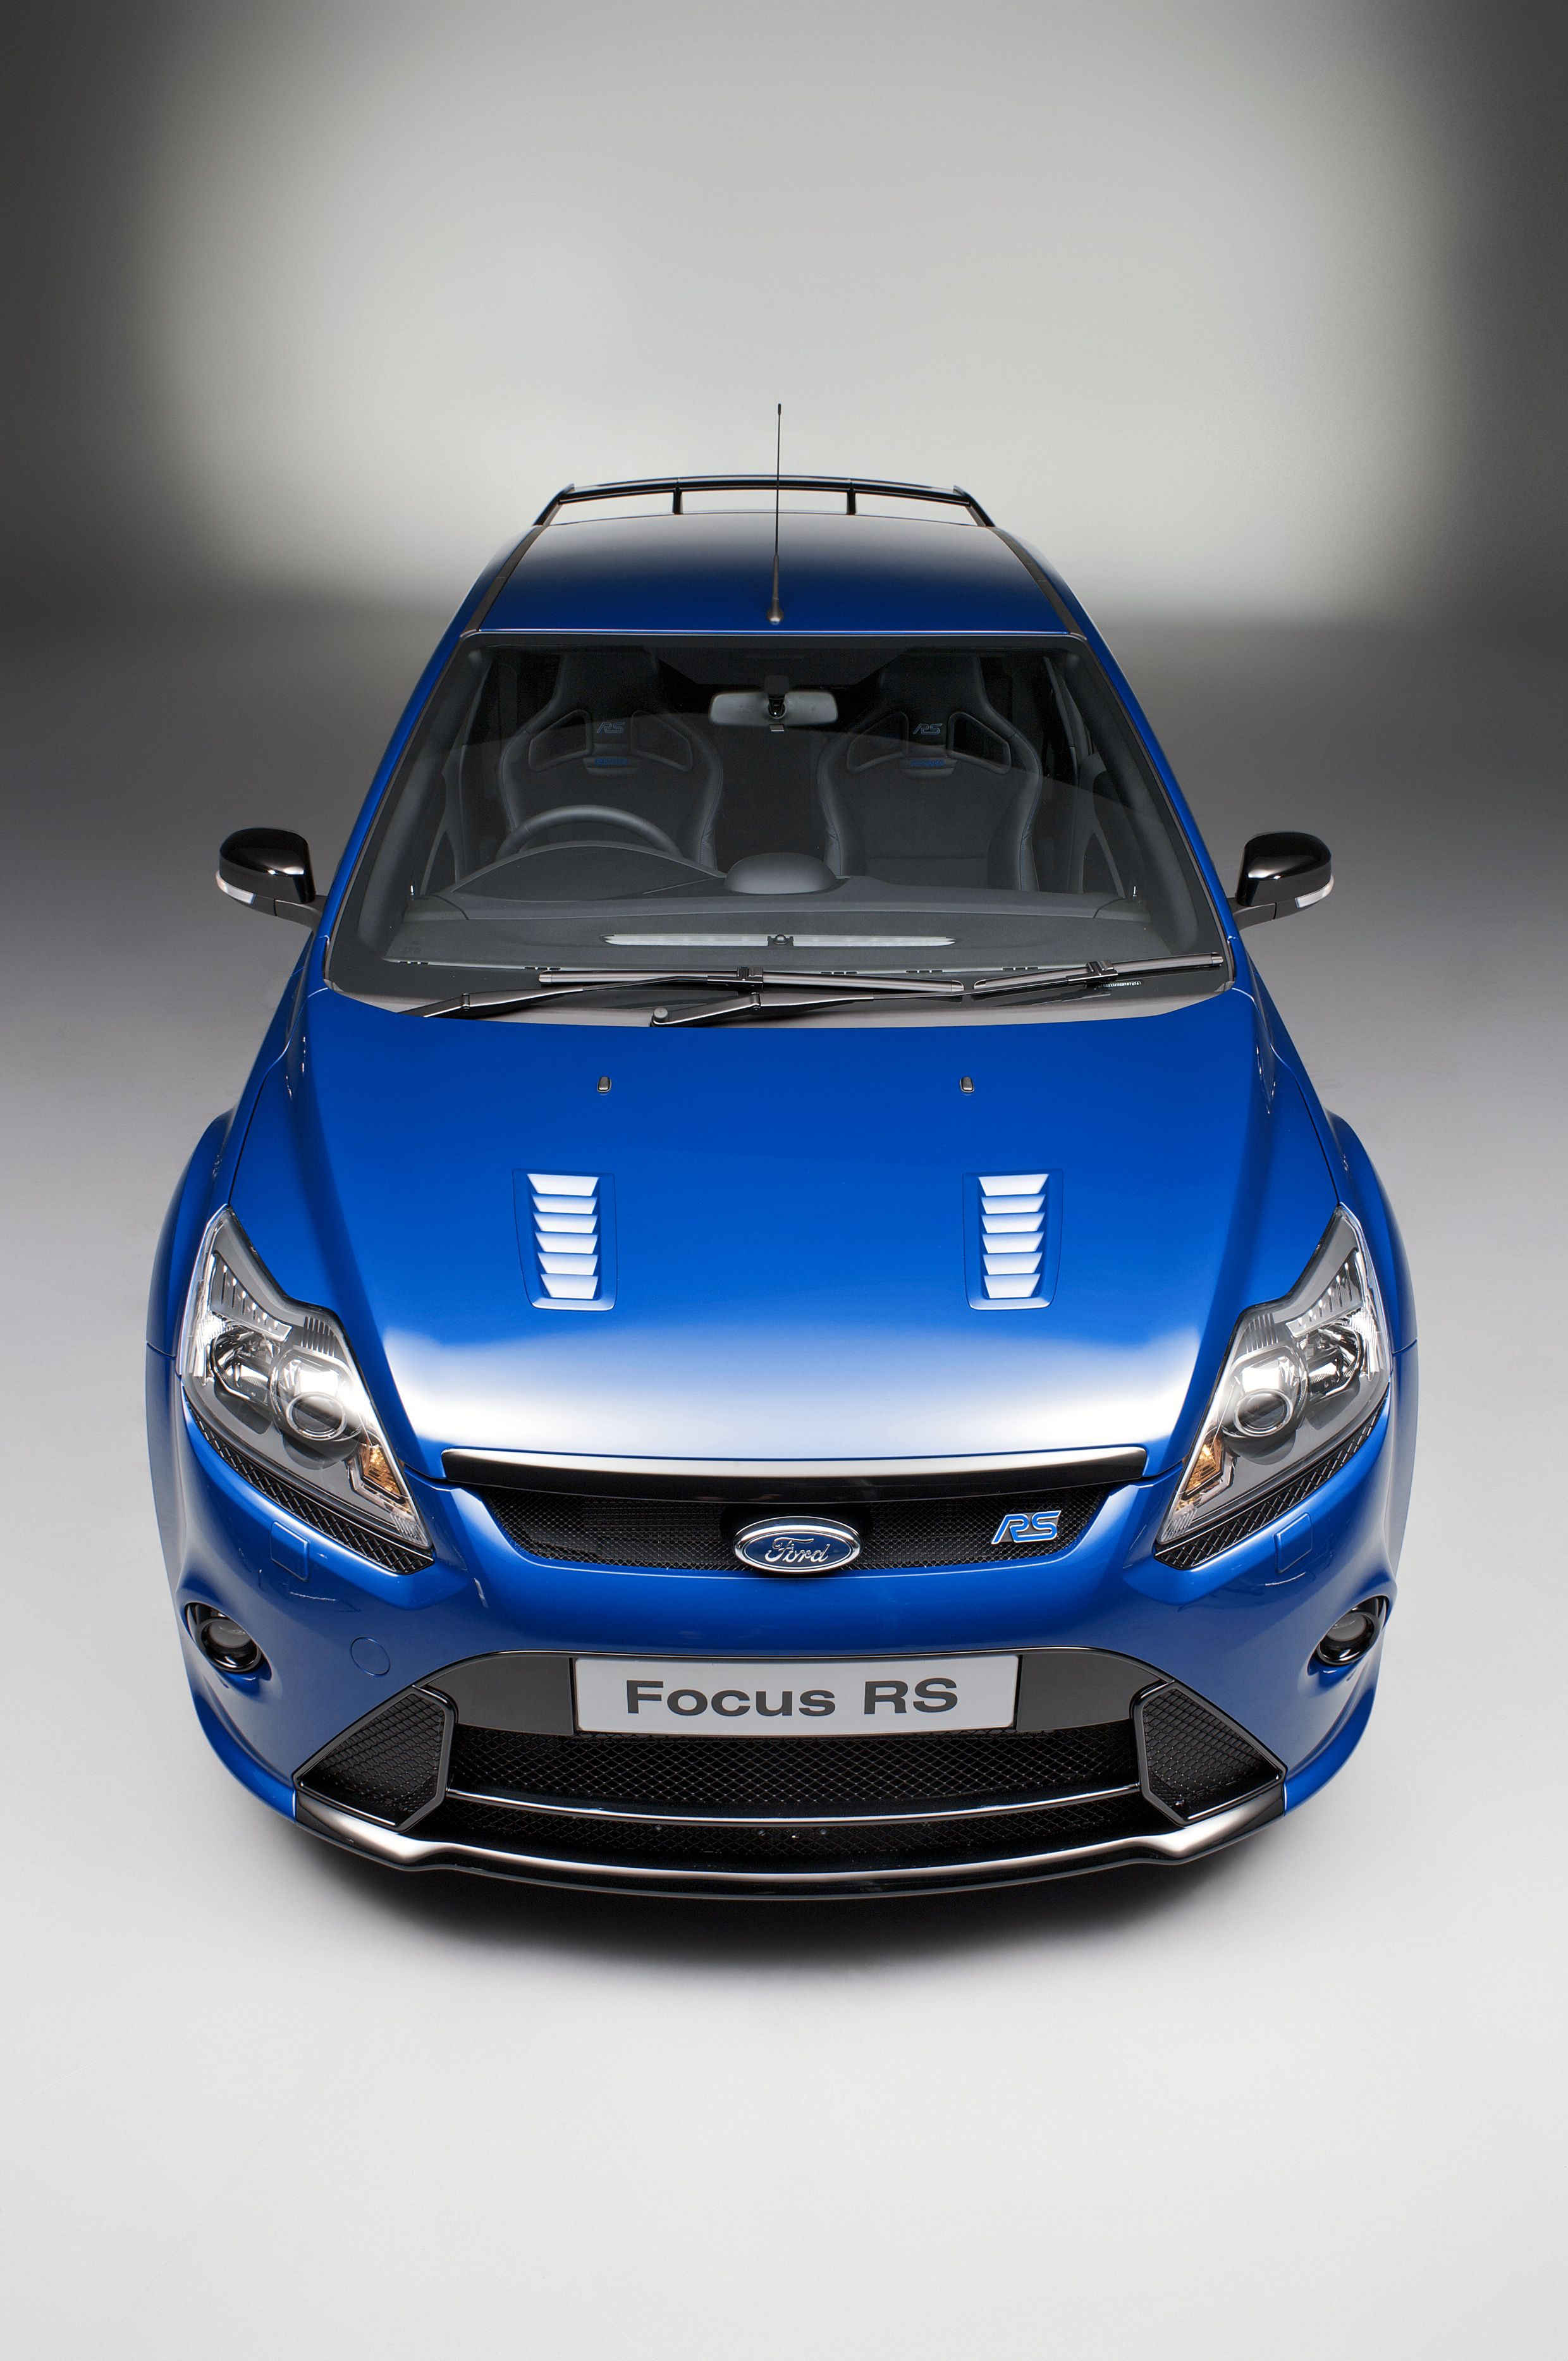 The Classic Iconic And Eye Catching Ford Focus Rs Mk 2 Universal